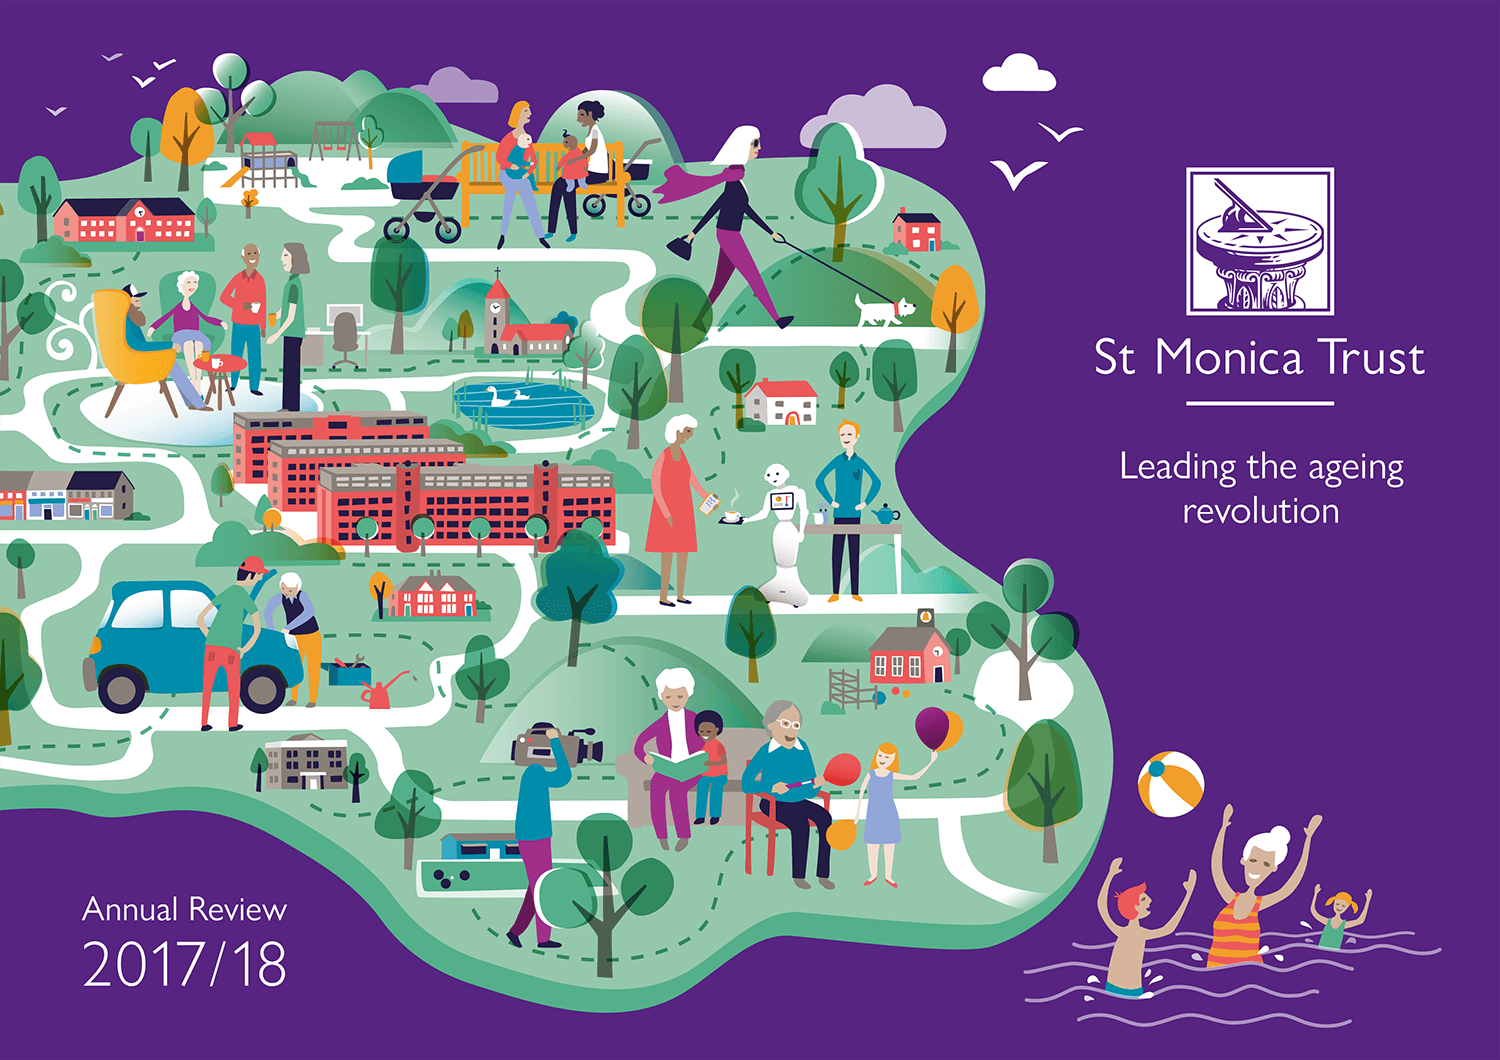 ST MONICA TRUST | The Ageing Revolution, annual report cover illustration